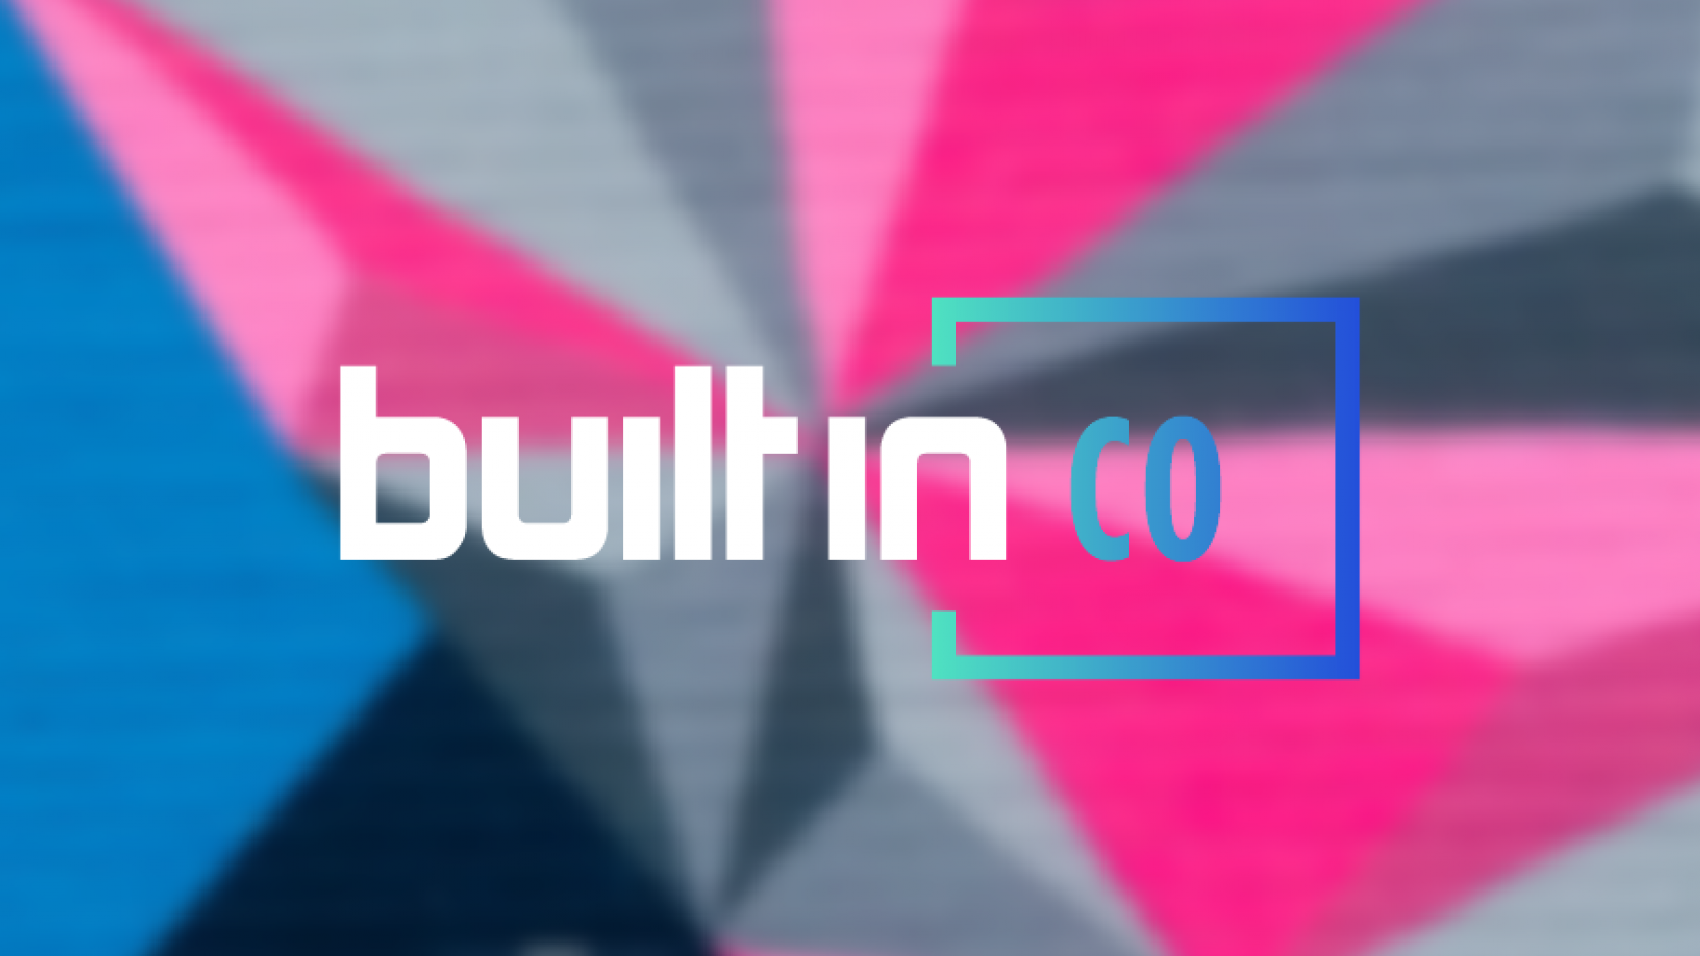 BuiltinCO-Workiva